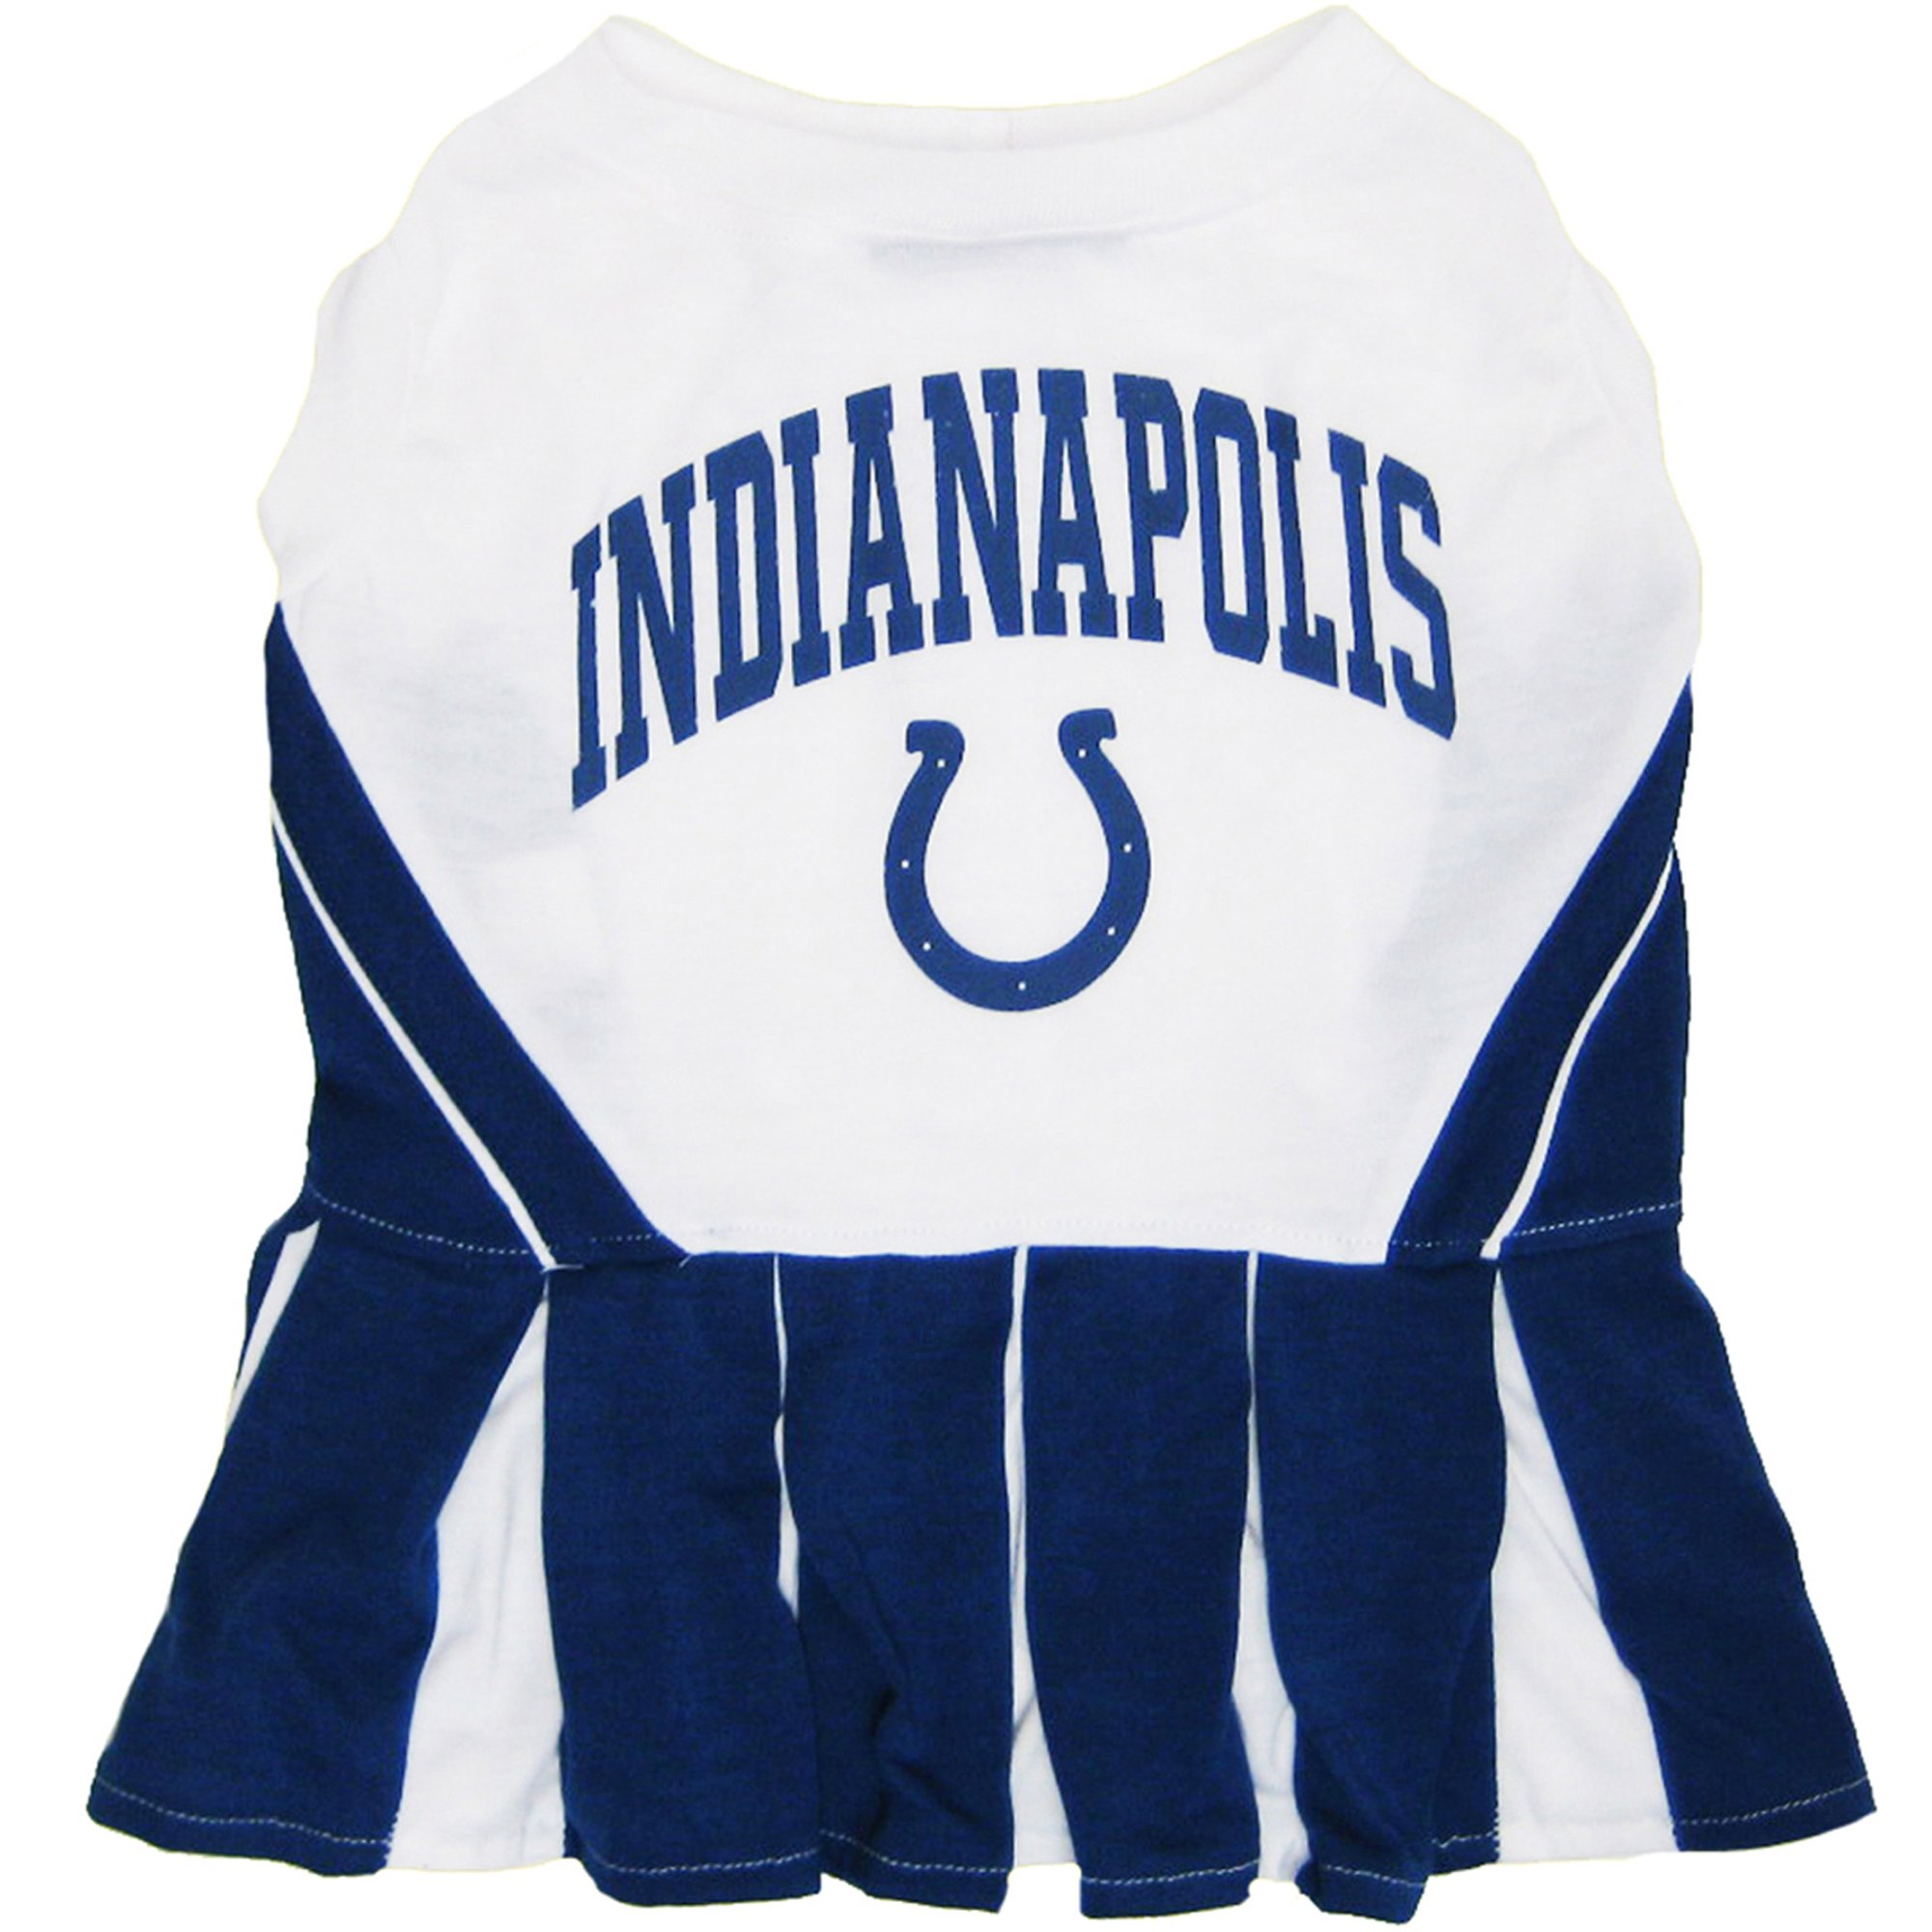 Pets First Indianapolis Colts Nfl Cheerleader Outfit X Small Blue Cheerleading Outfits Colts Cheerleaders Dog Cheerleader